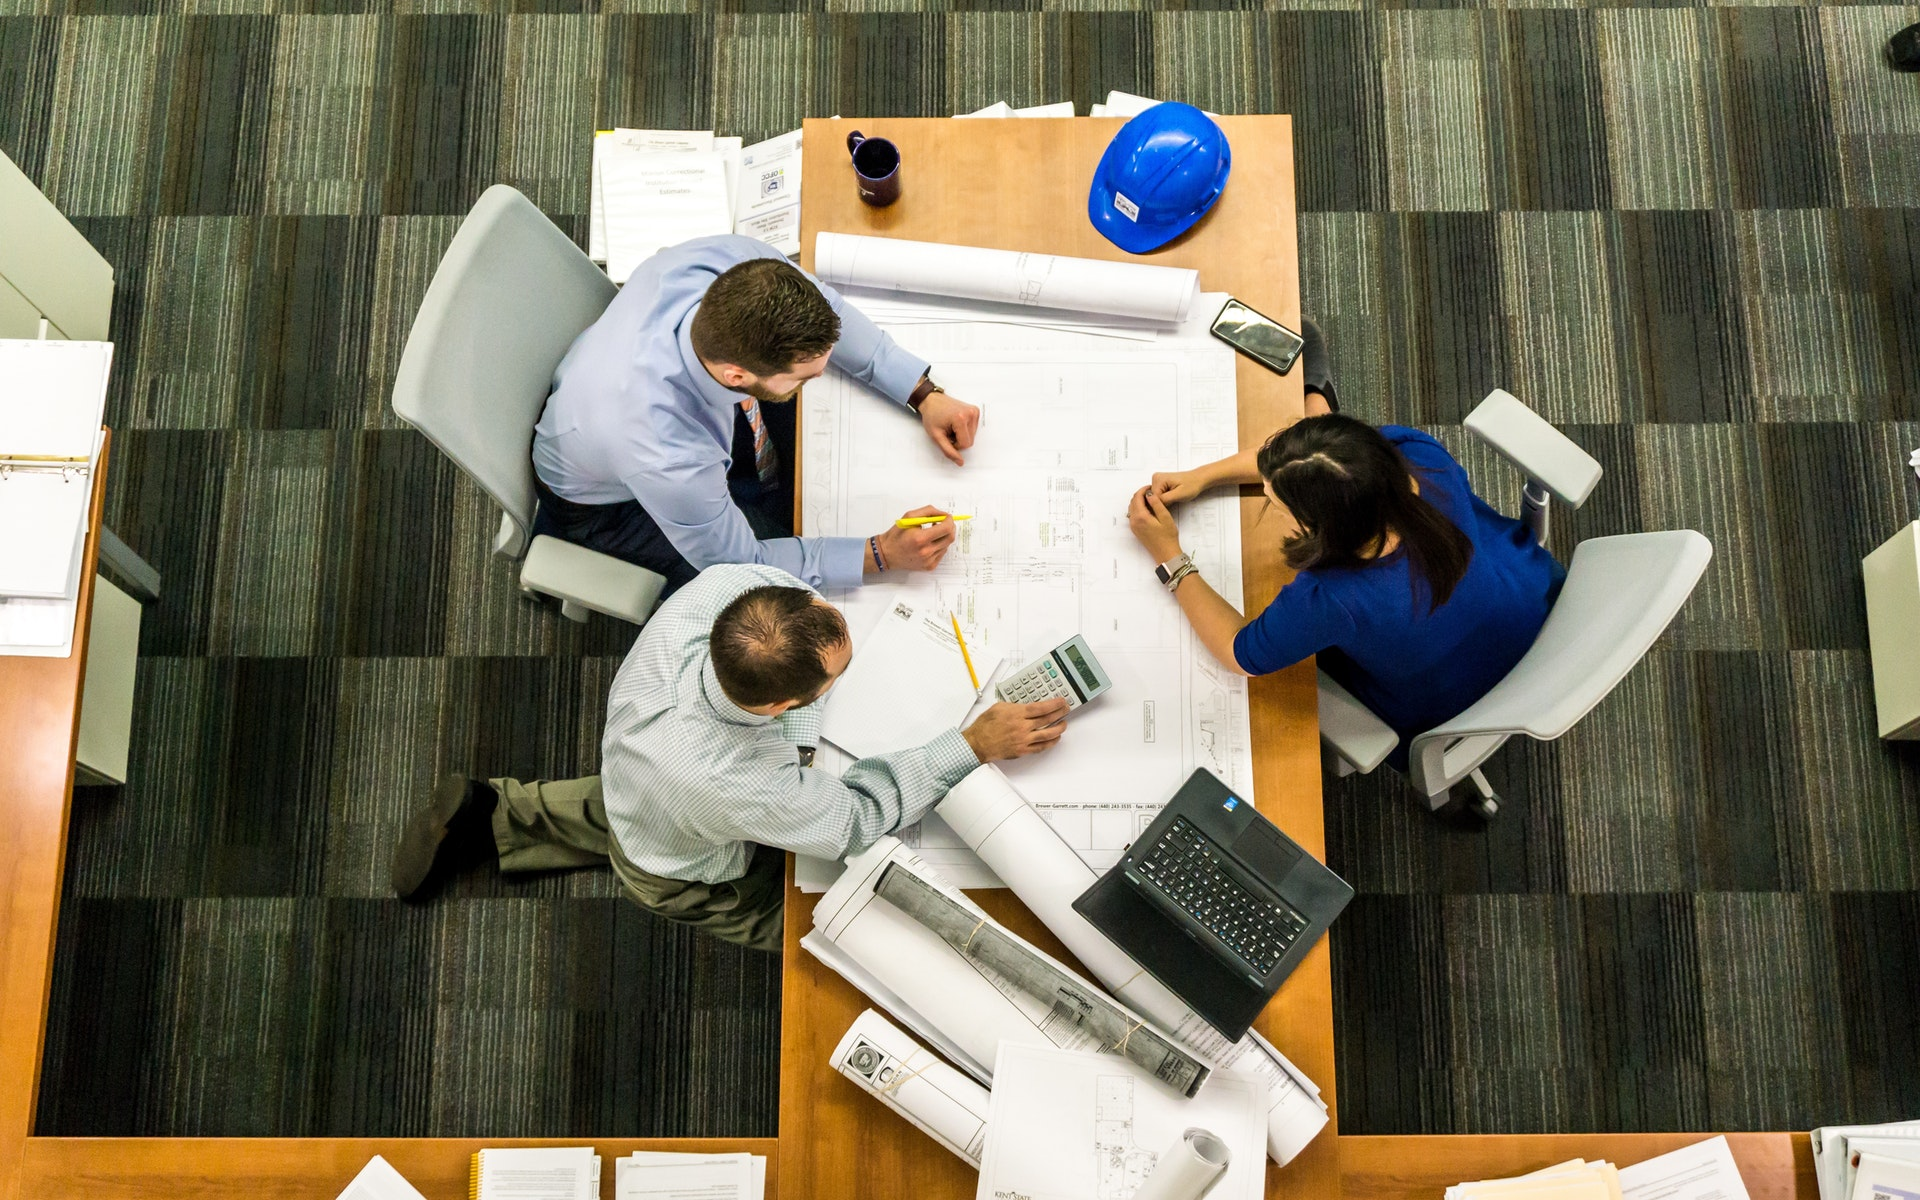 Is LEED Certification Important for Civil Engineers|Is LEED certification important for a Civil Engineer||Who are Civil Engineers|What does a Civil Engineer do